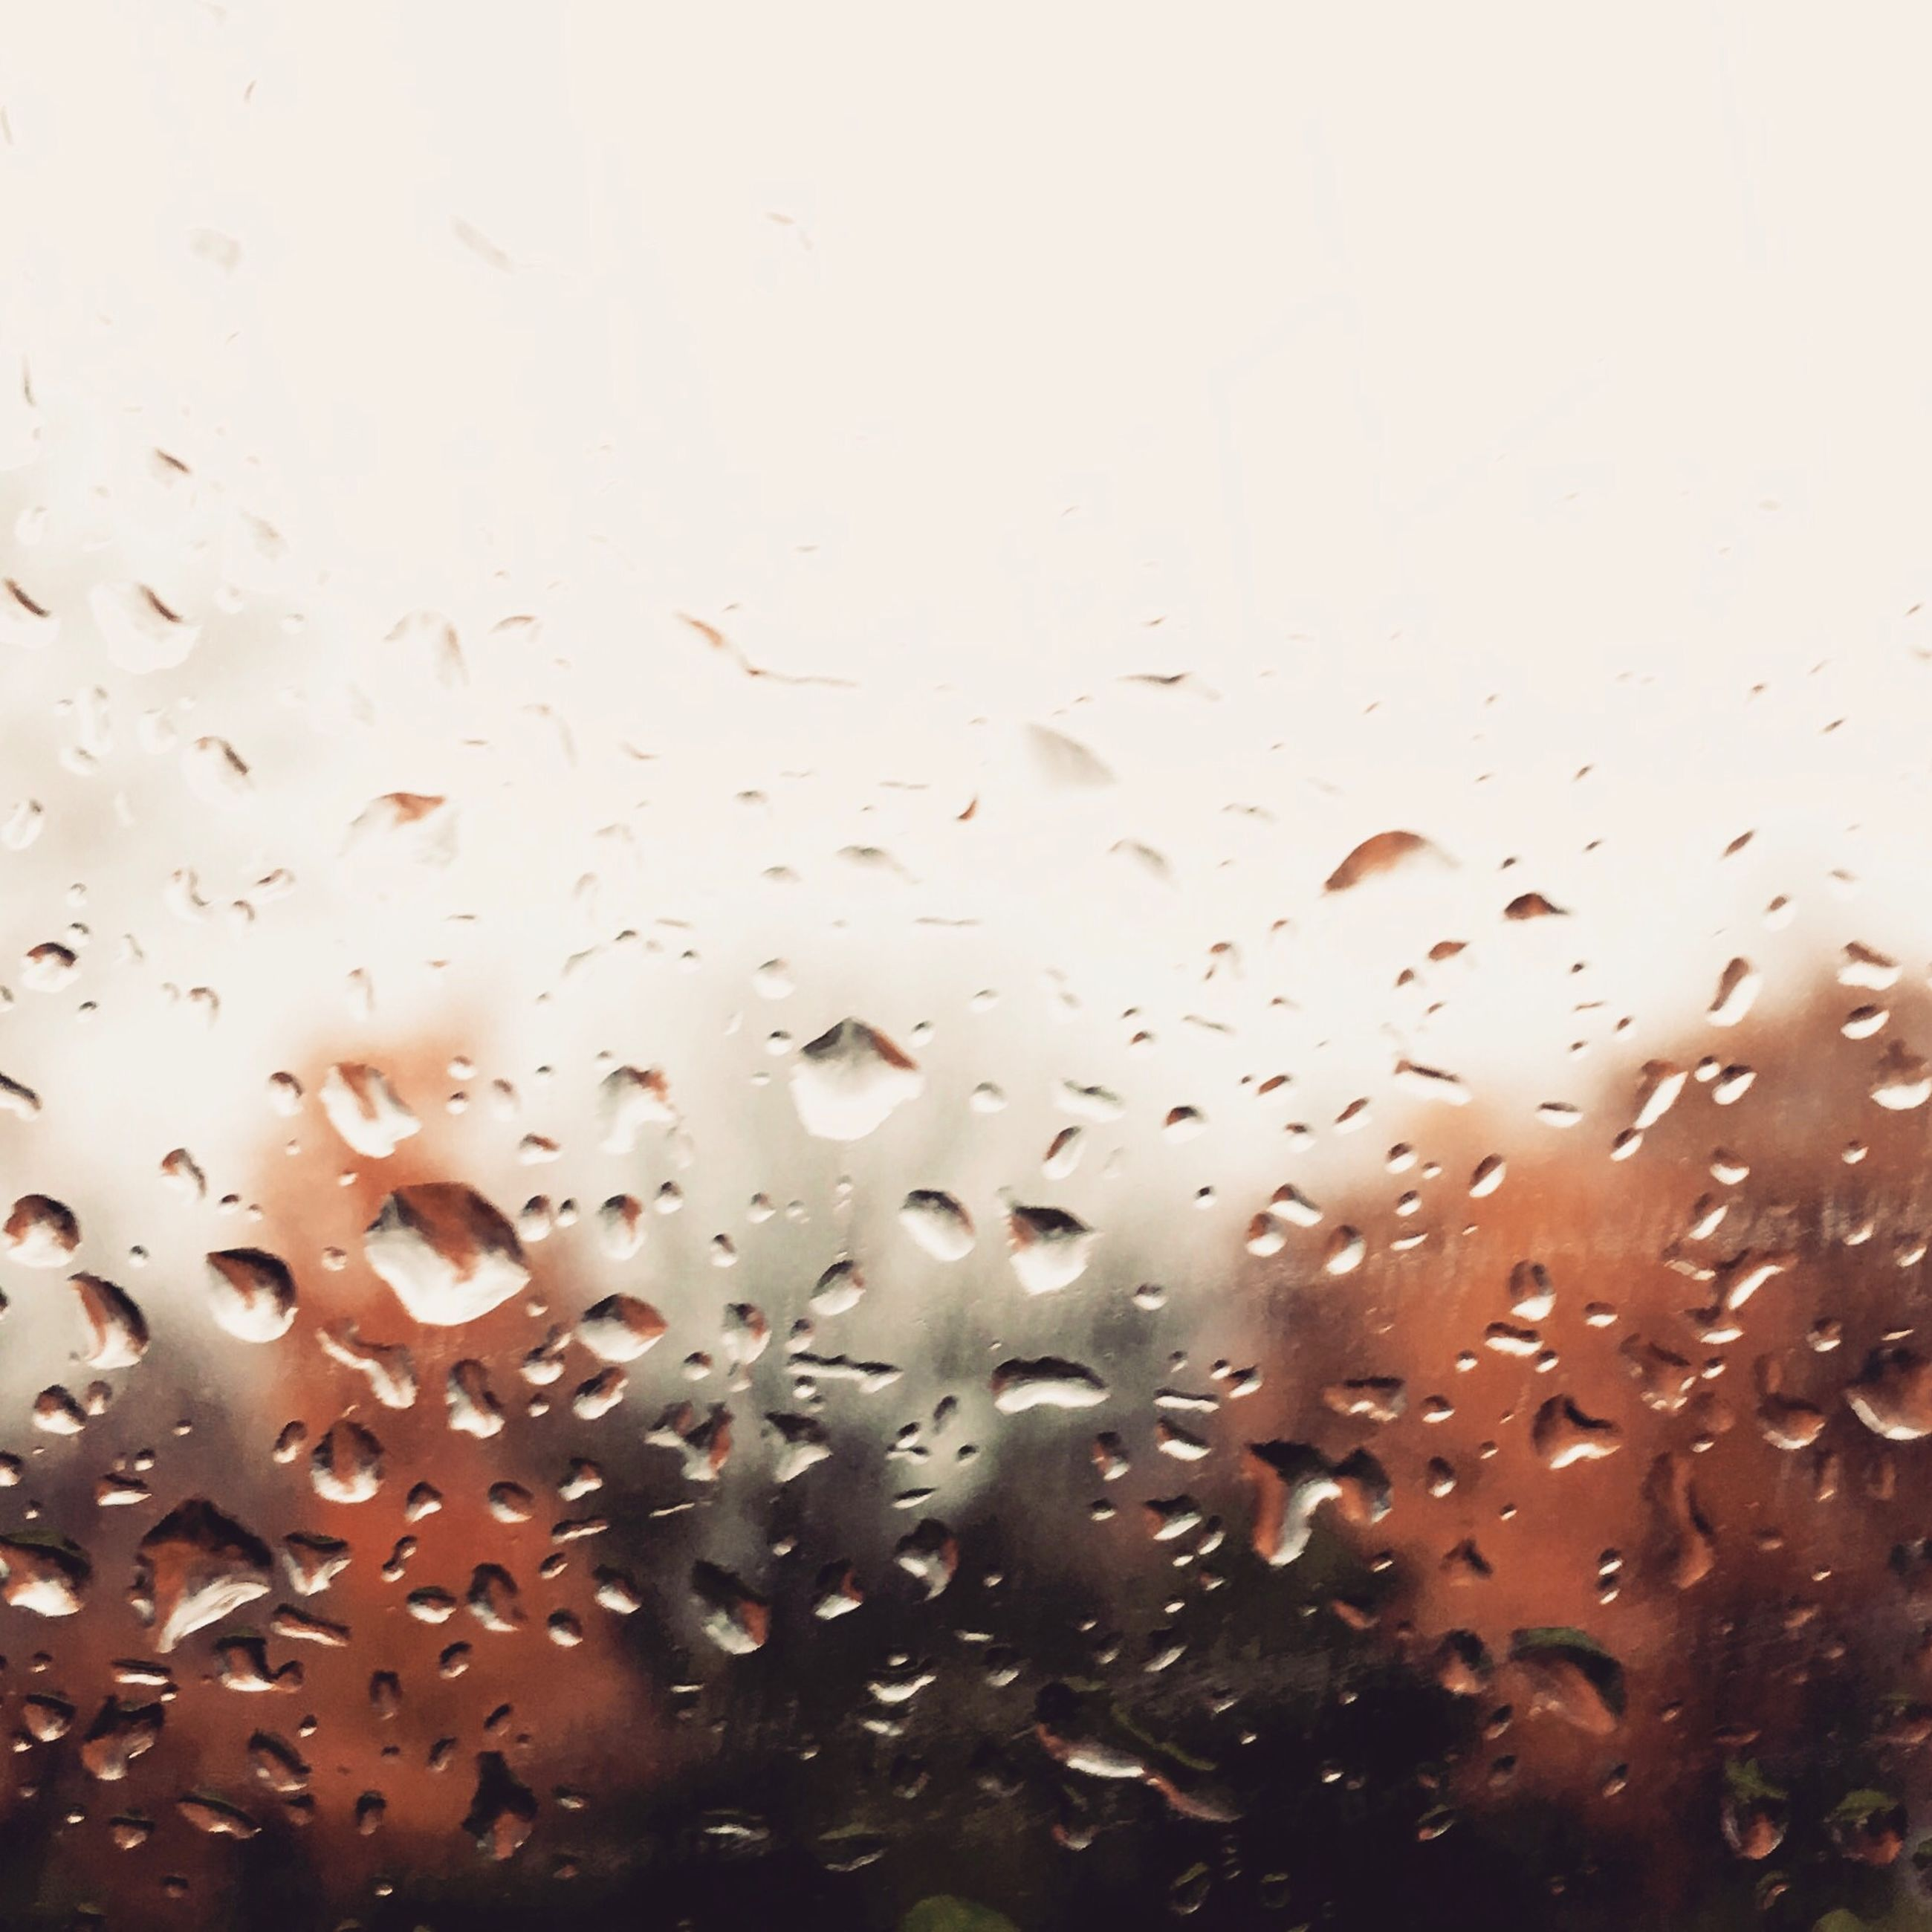 drop, wet, window, rain, water, indoors, backgrounds, weather, raindrop, full frame, transparent, glass - material, season, close-up, sky, glass, focus on foreground, no people, droplet, day